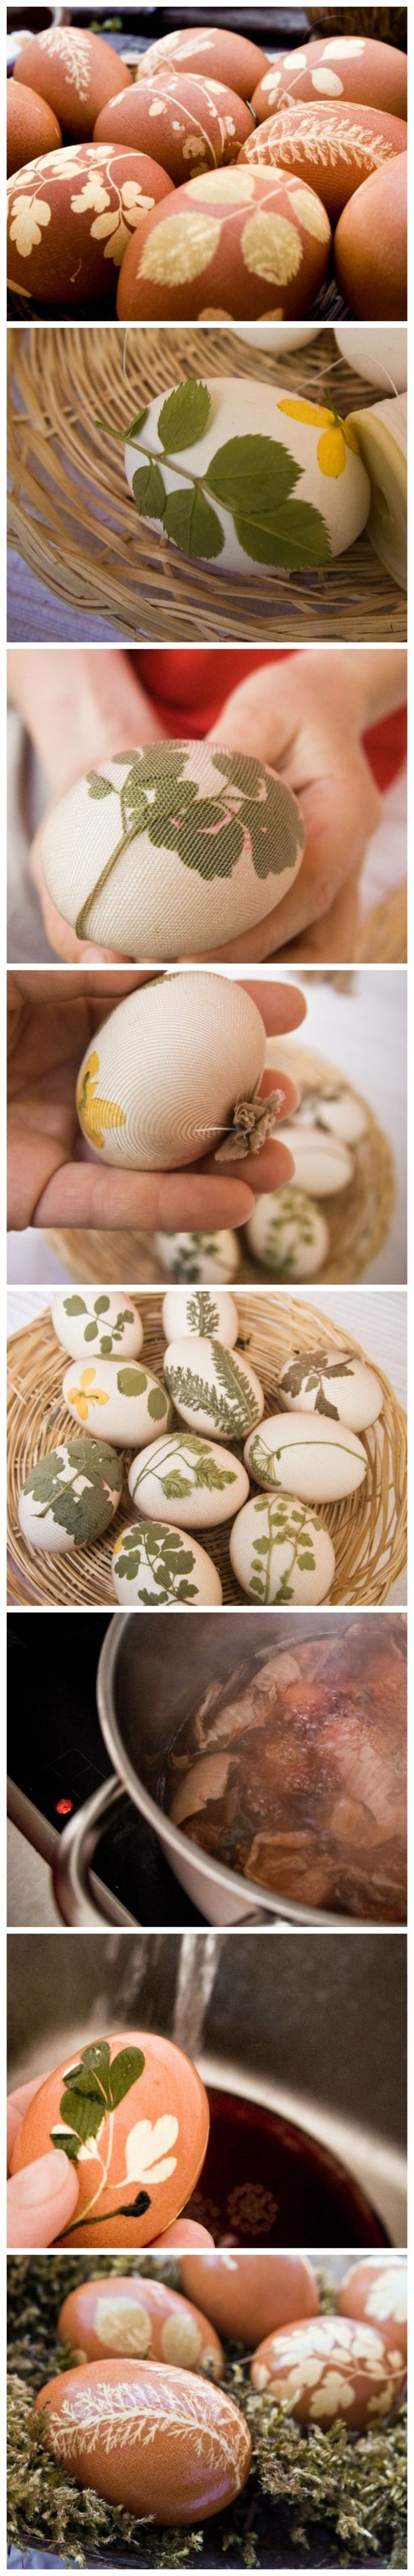 Dye Easter Eggs With Natural Ingredients Recipe - I Love Herbalism